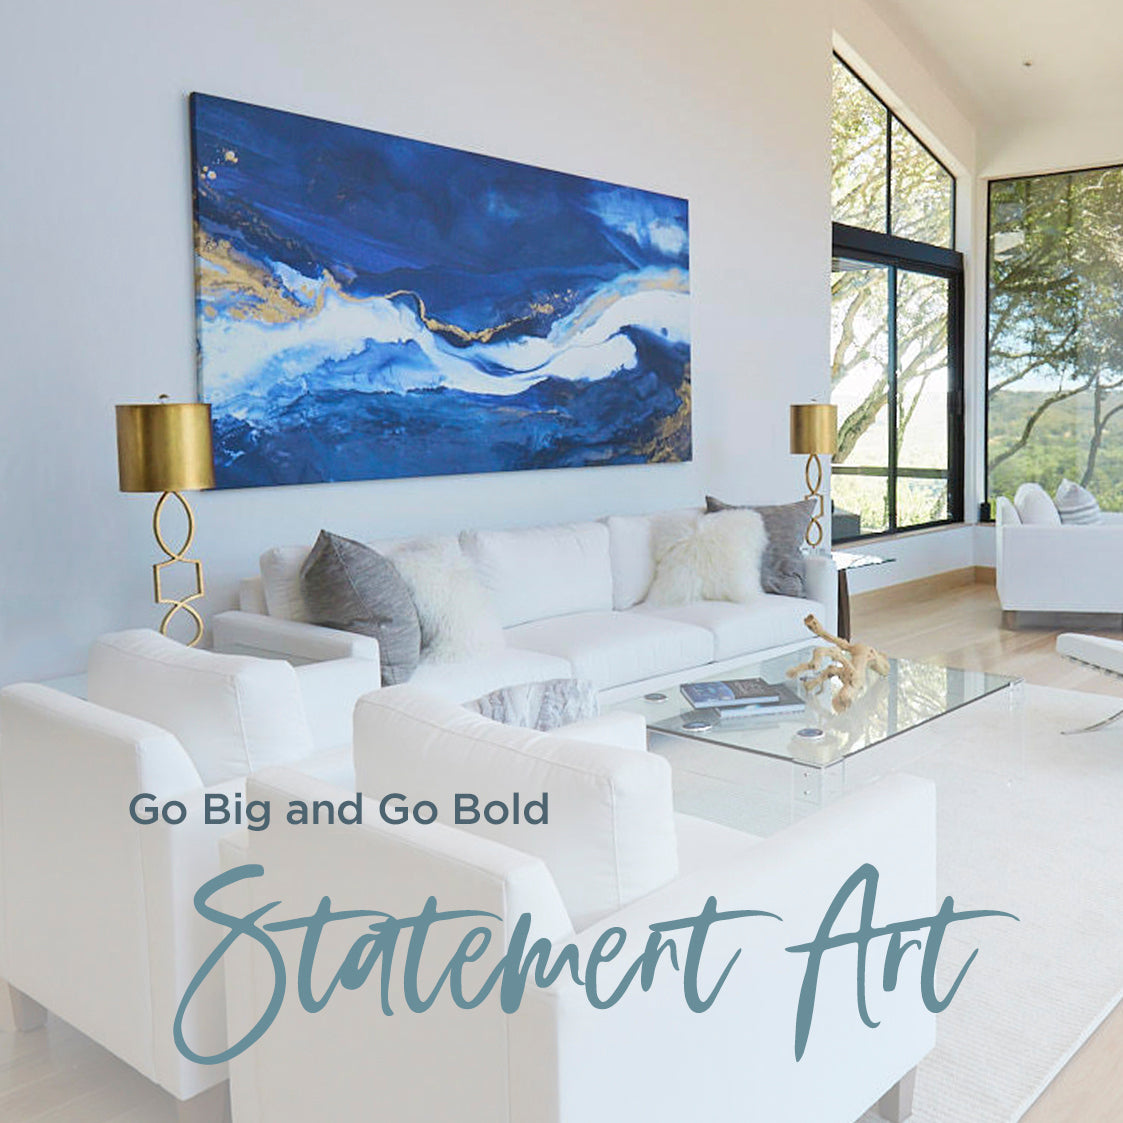 Go Big and Go Bold:  Using Statement Art in Your Home